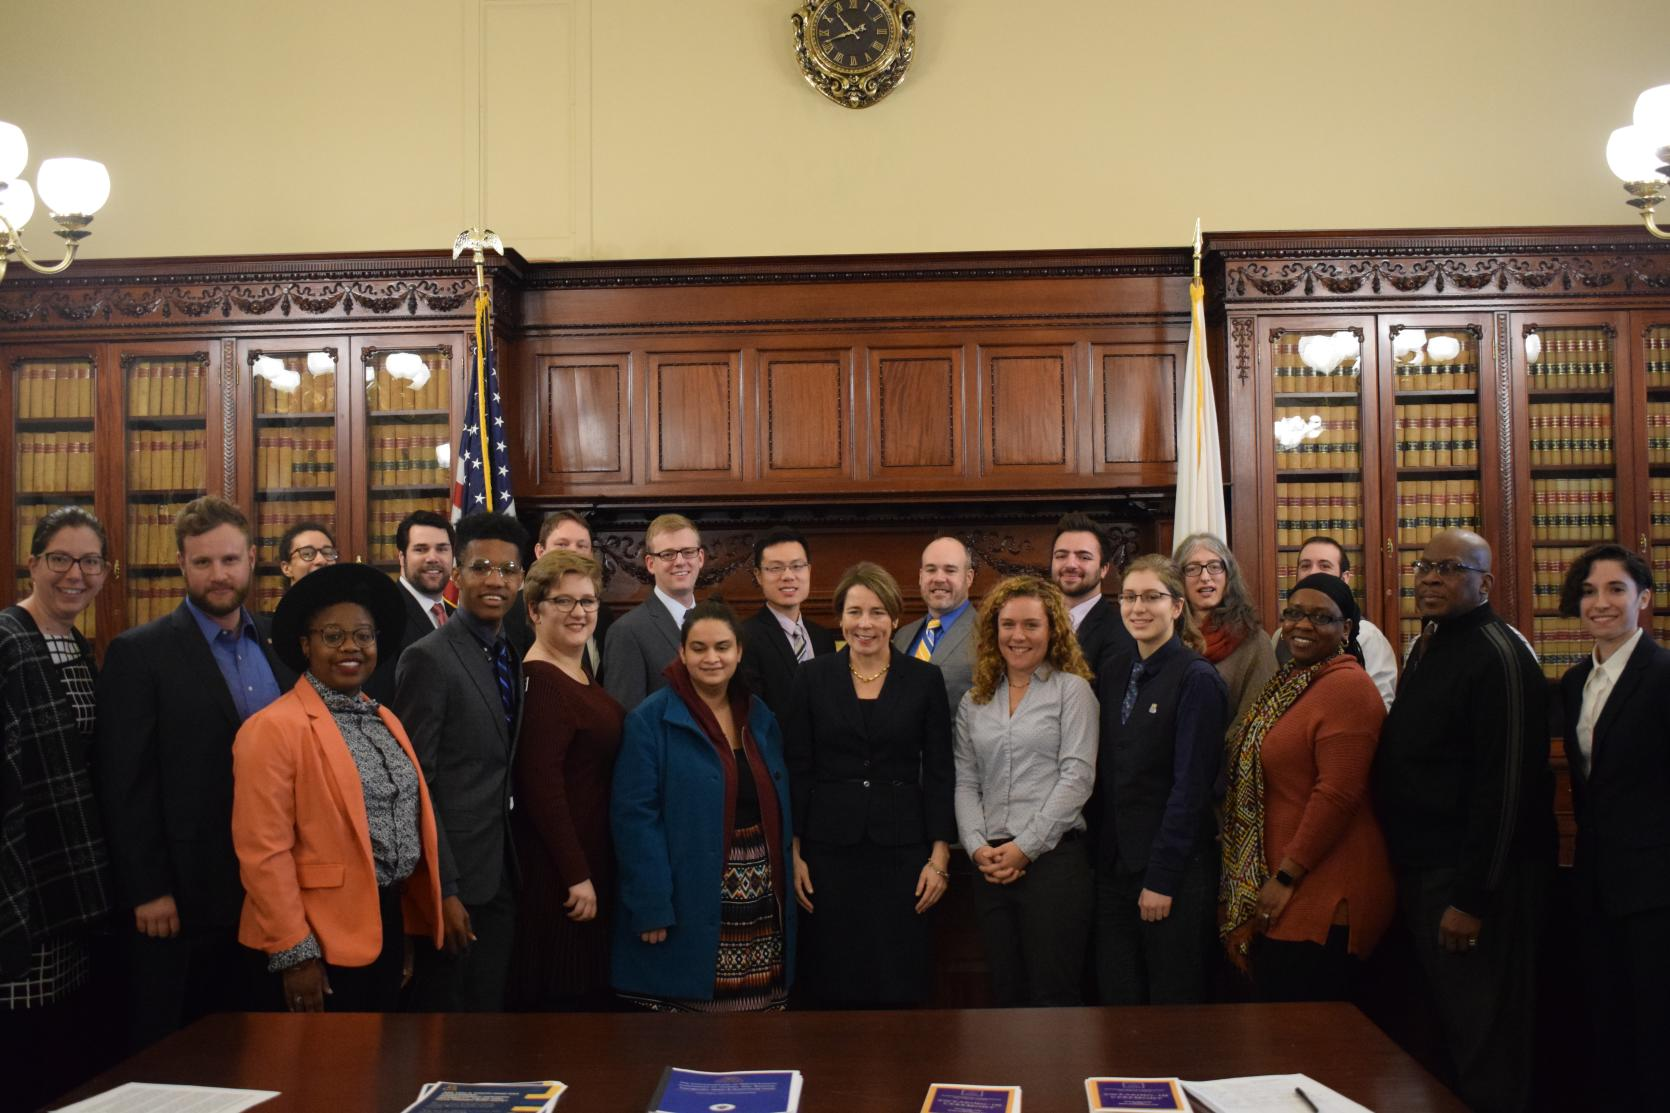 Commission Members & Attorney General Maura Healey After Swearing-In